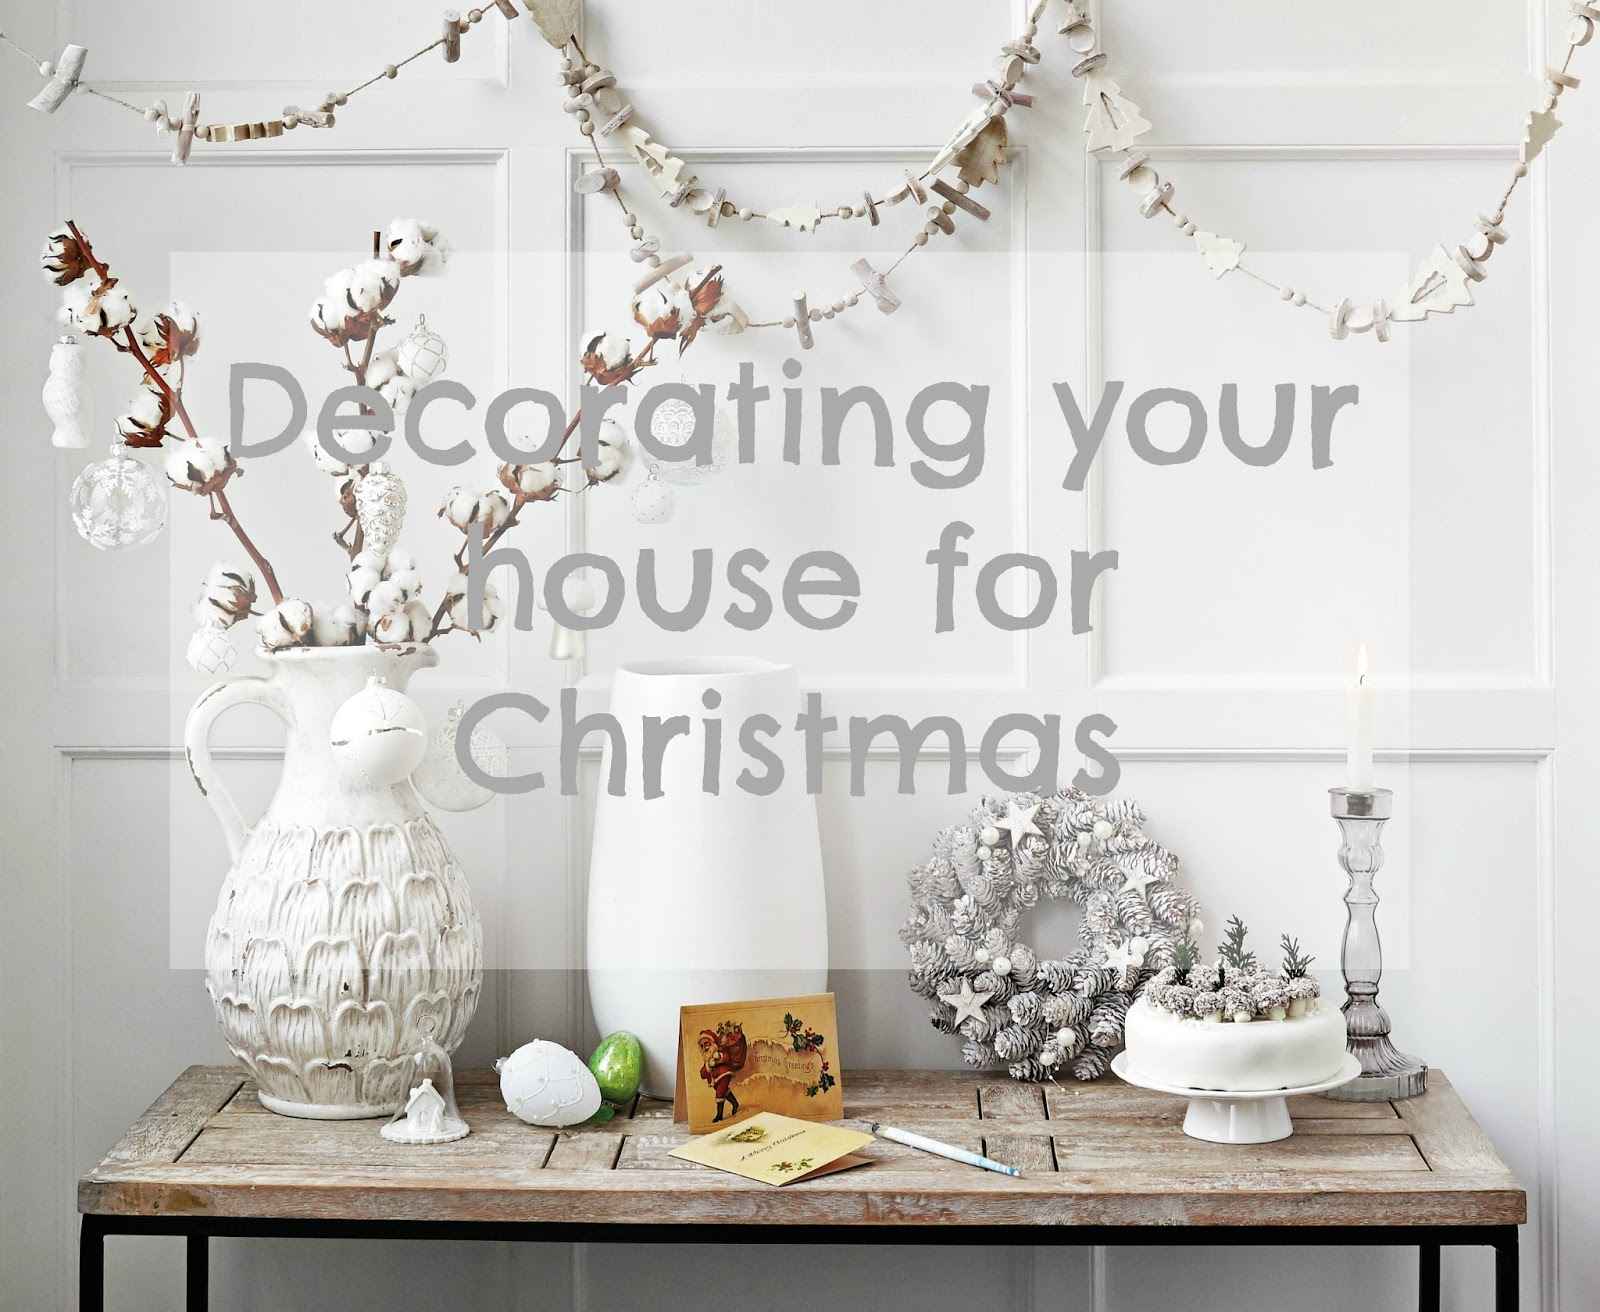 Lifestyle | Decorating your house for Christmas